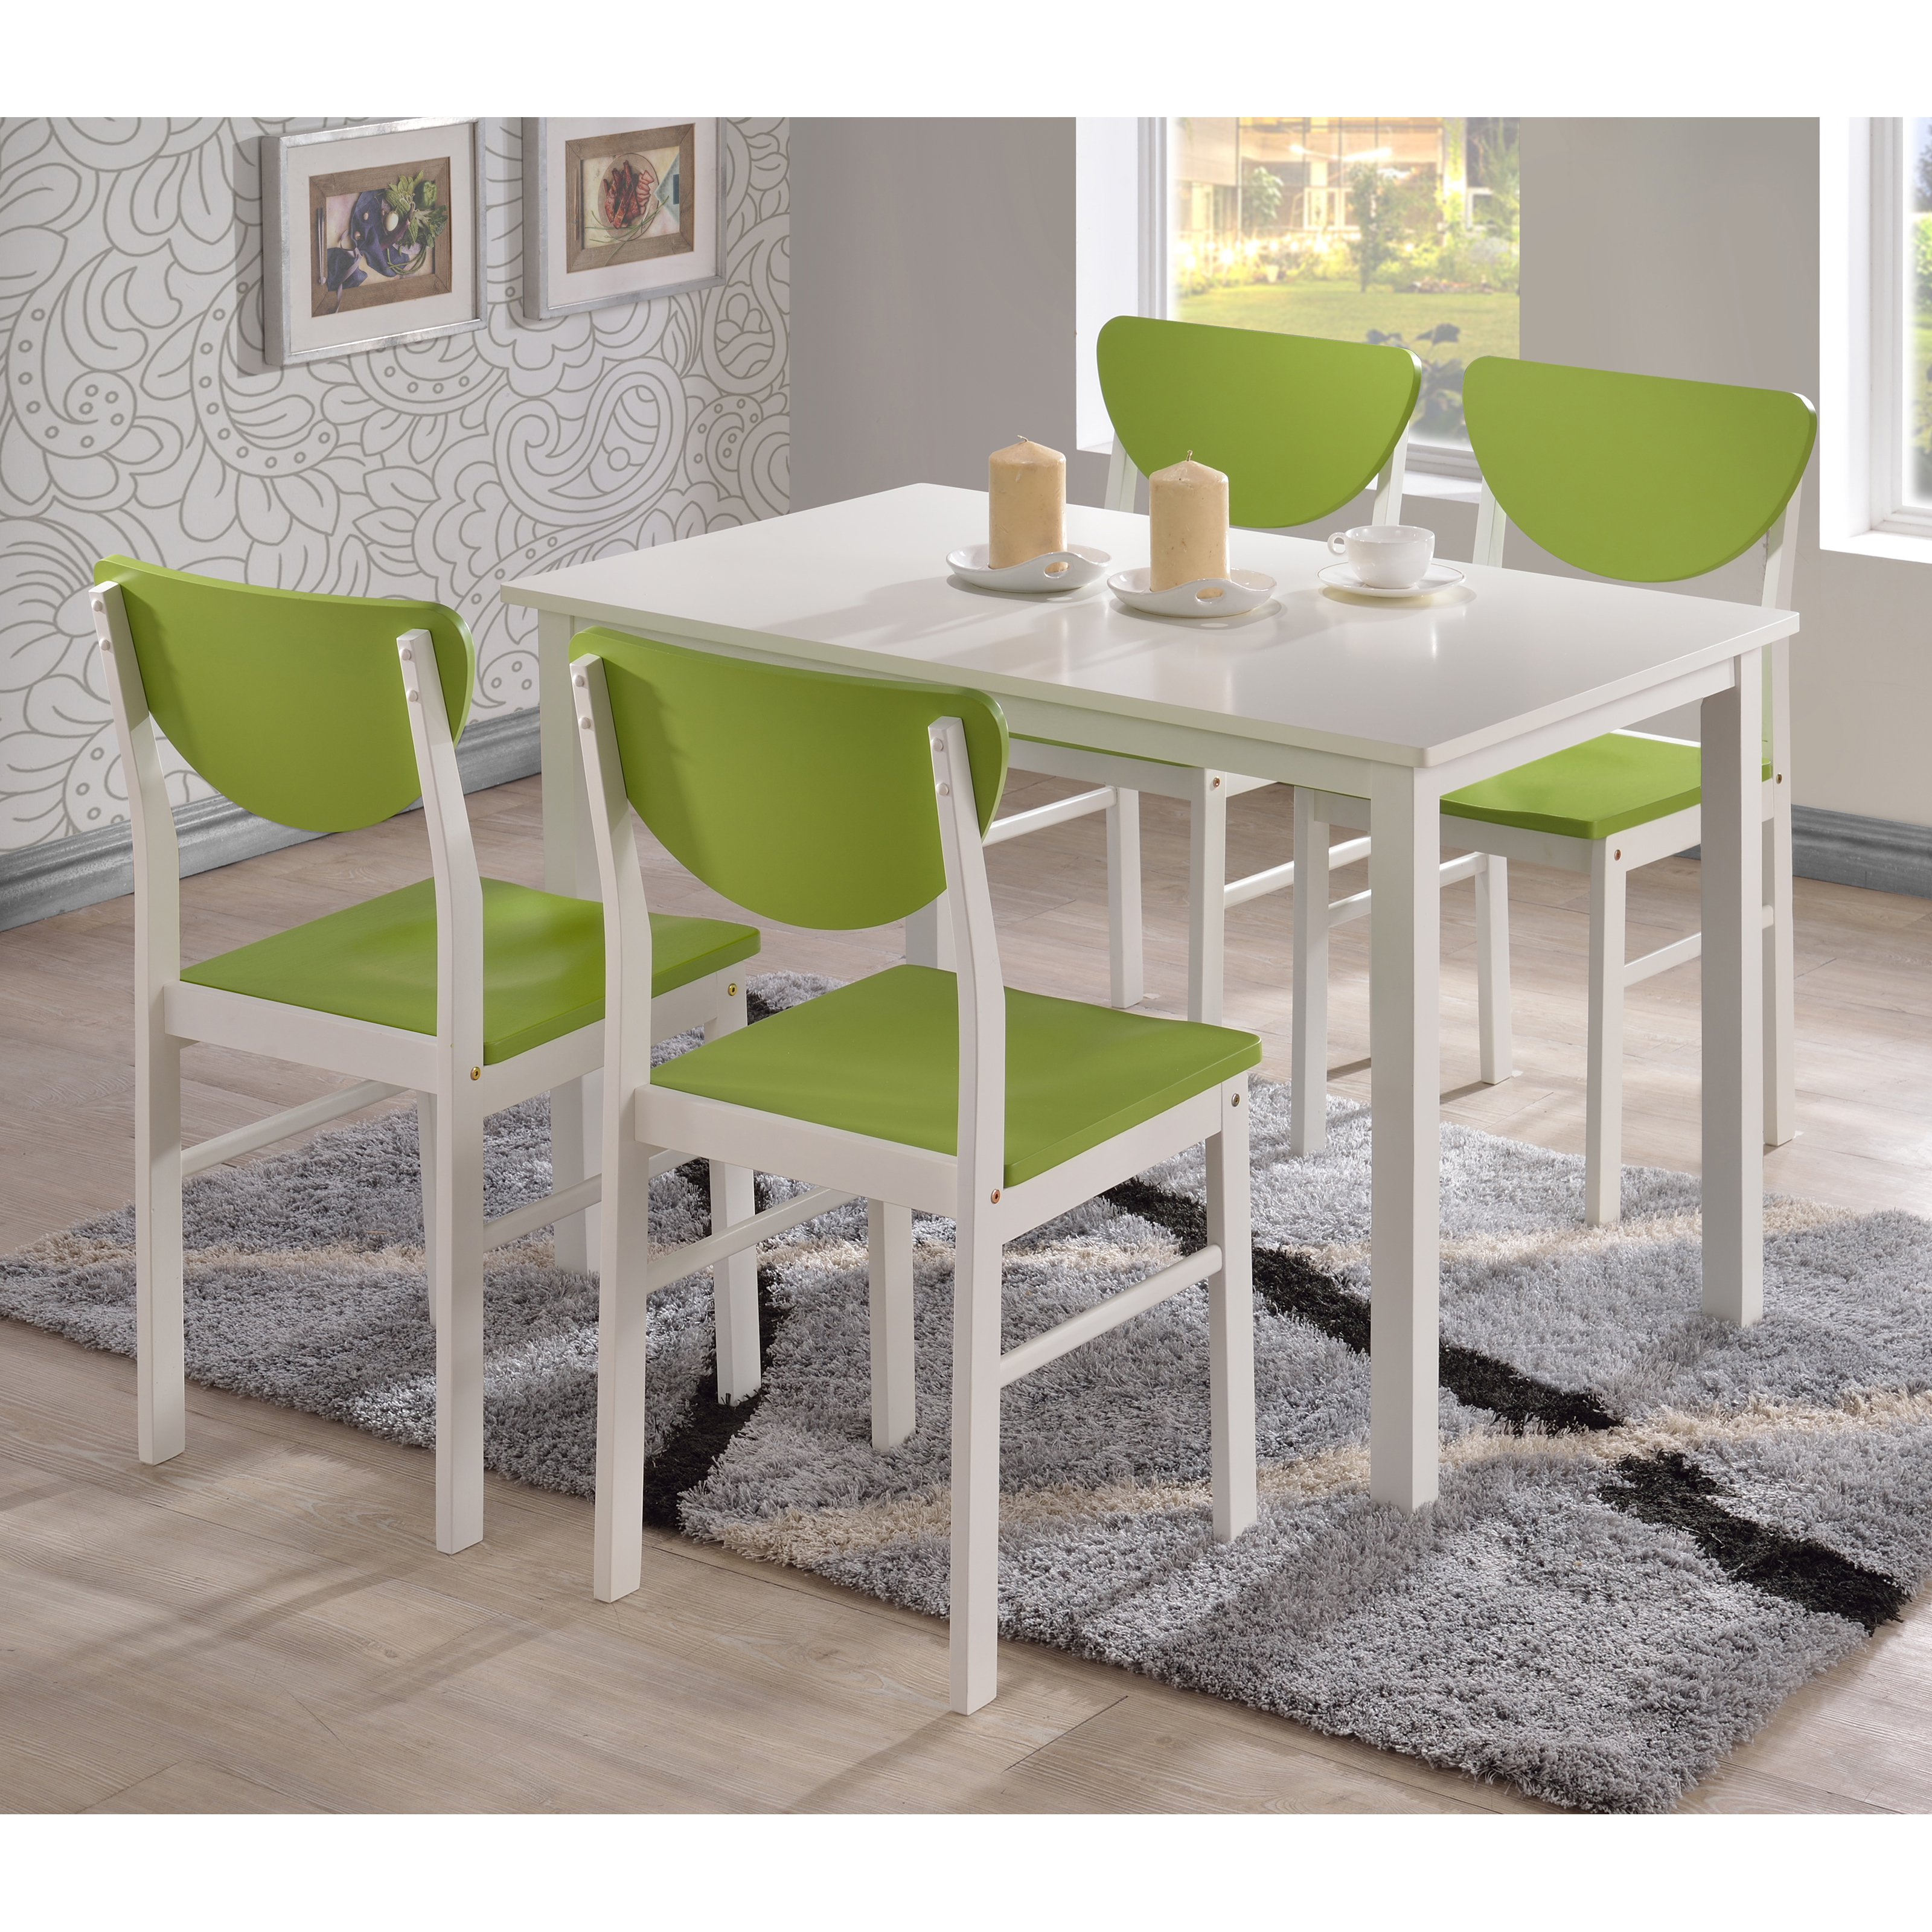 K & B Furniture Rutland Dining Table - White